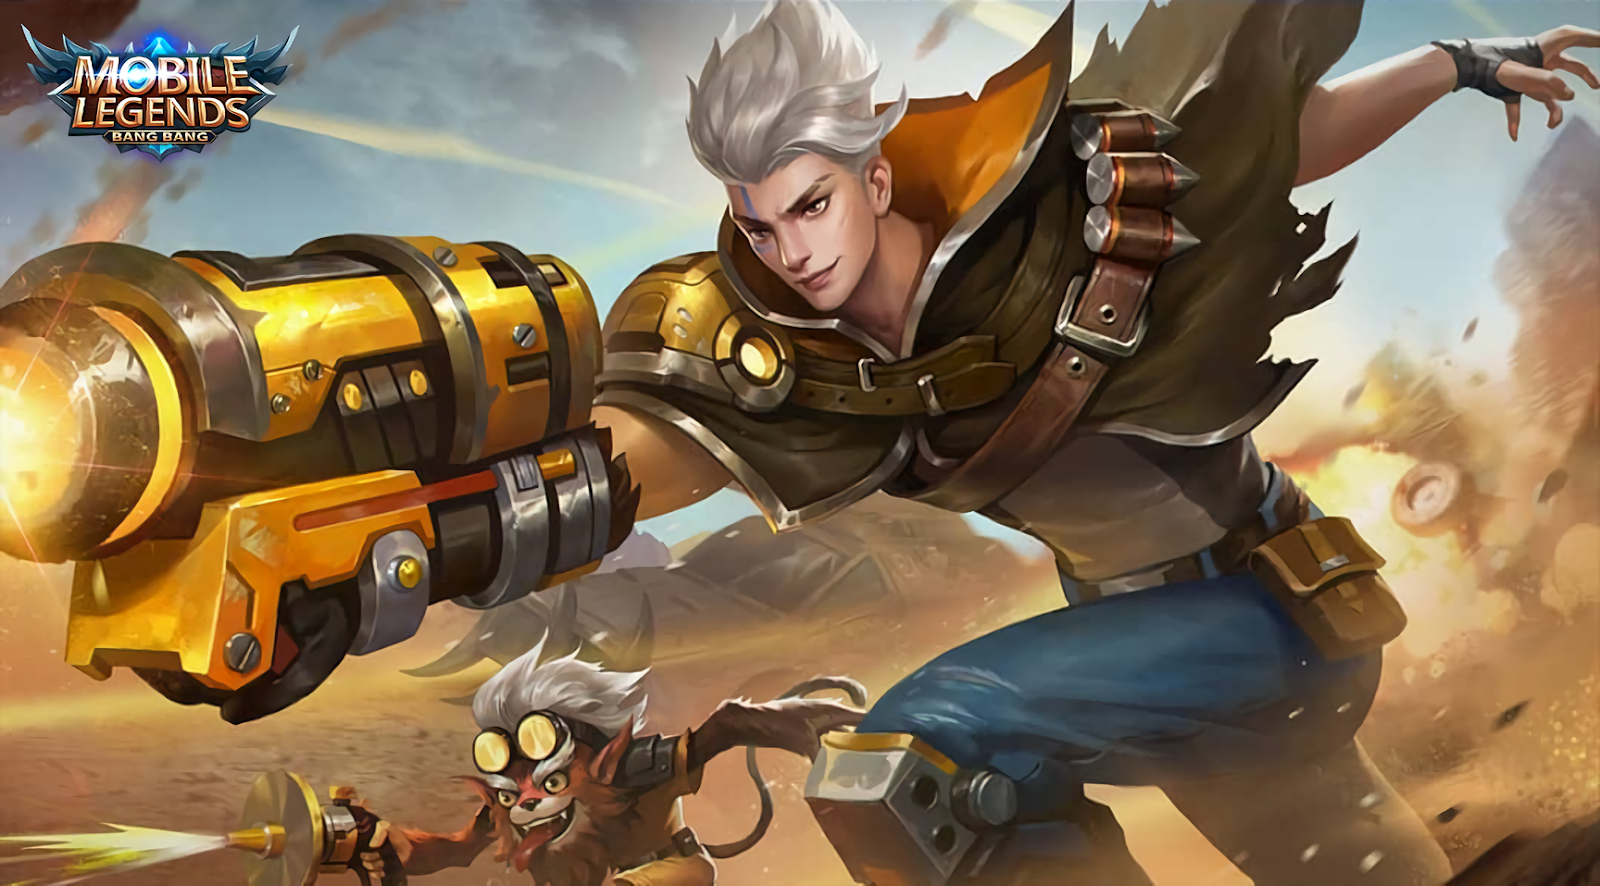 panduan hero mobile legends: claude | mobile legend